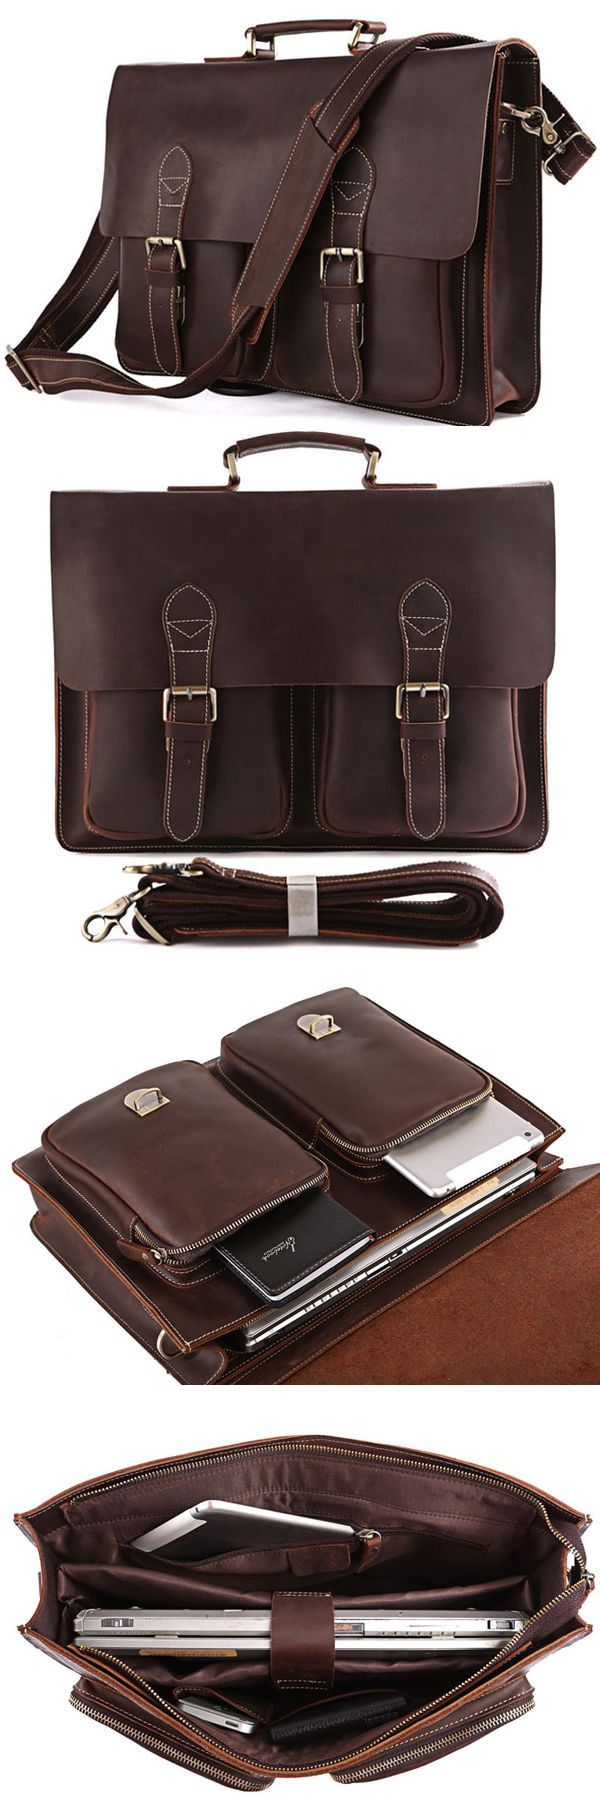 Leather Briefcase Laptop Men's Organizer Bag #leatherbag #leatherbriefcase